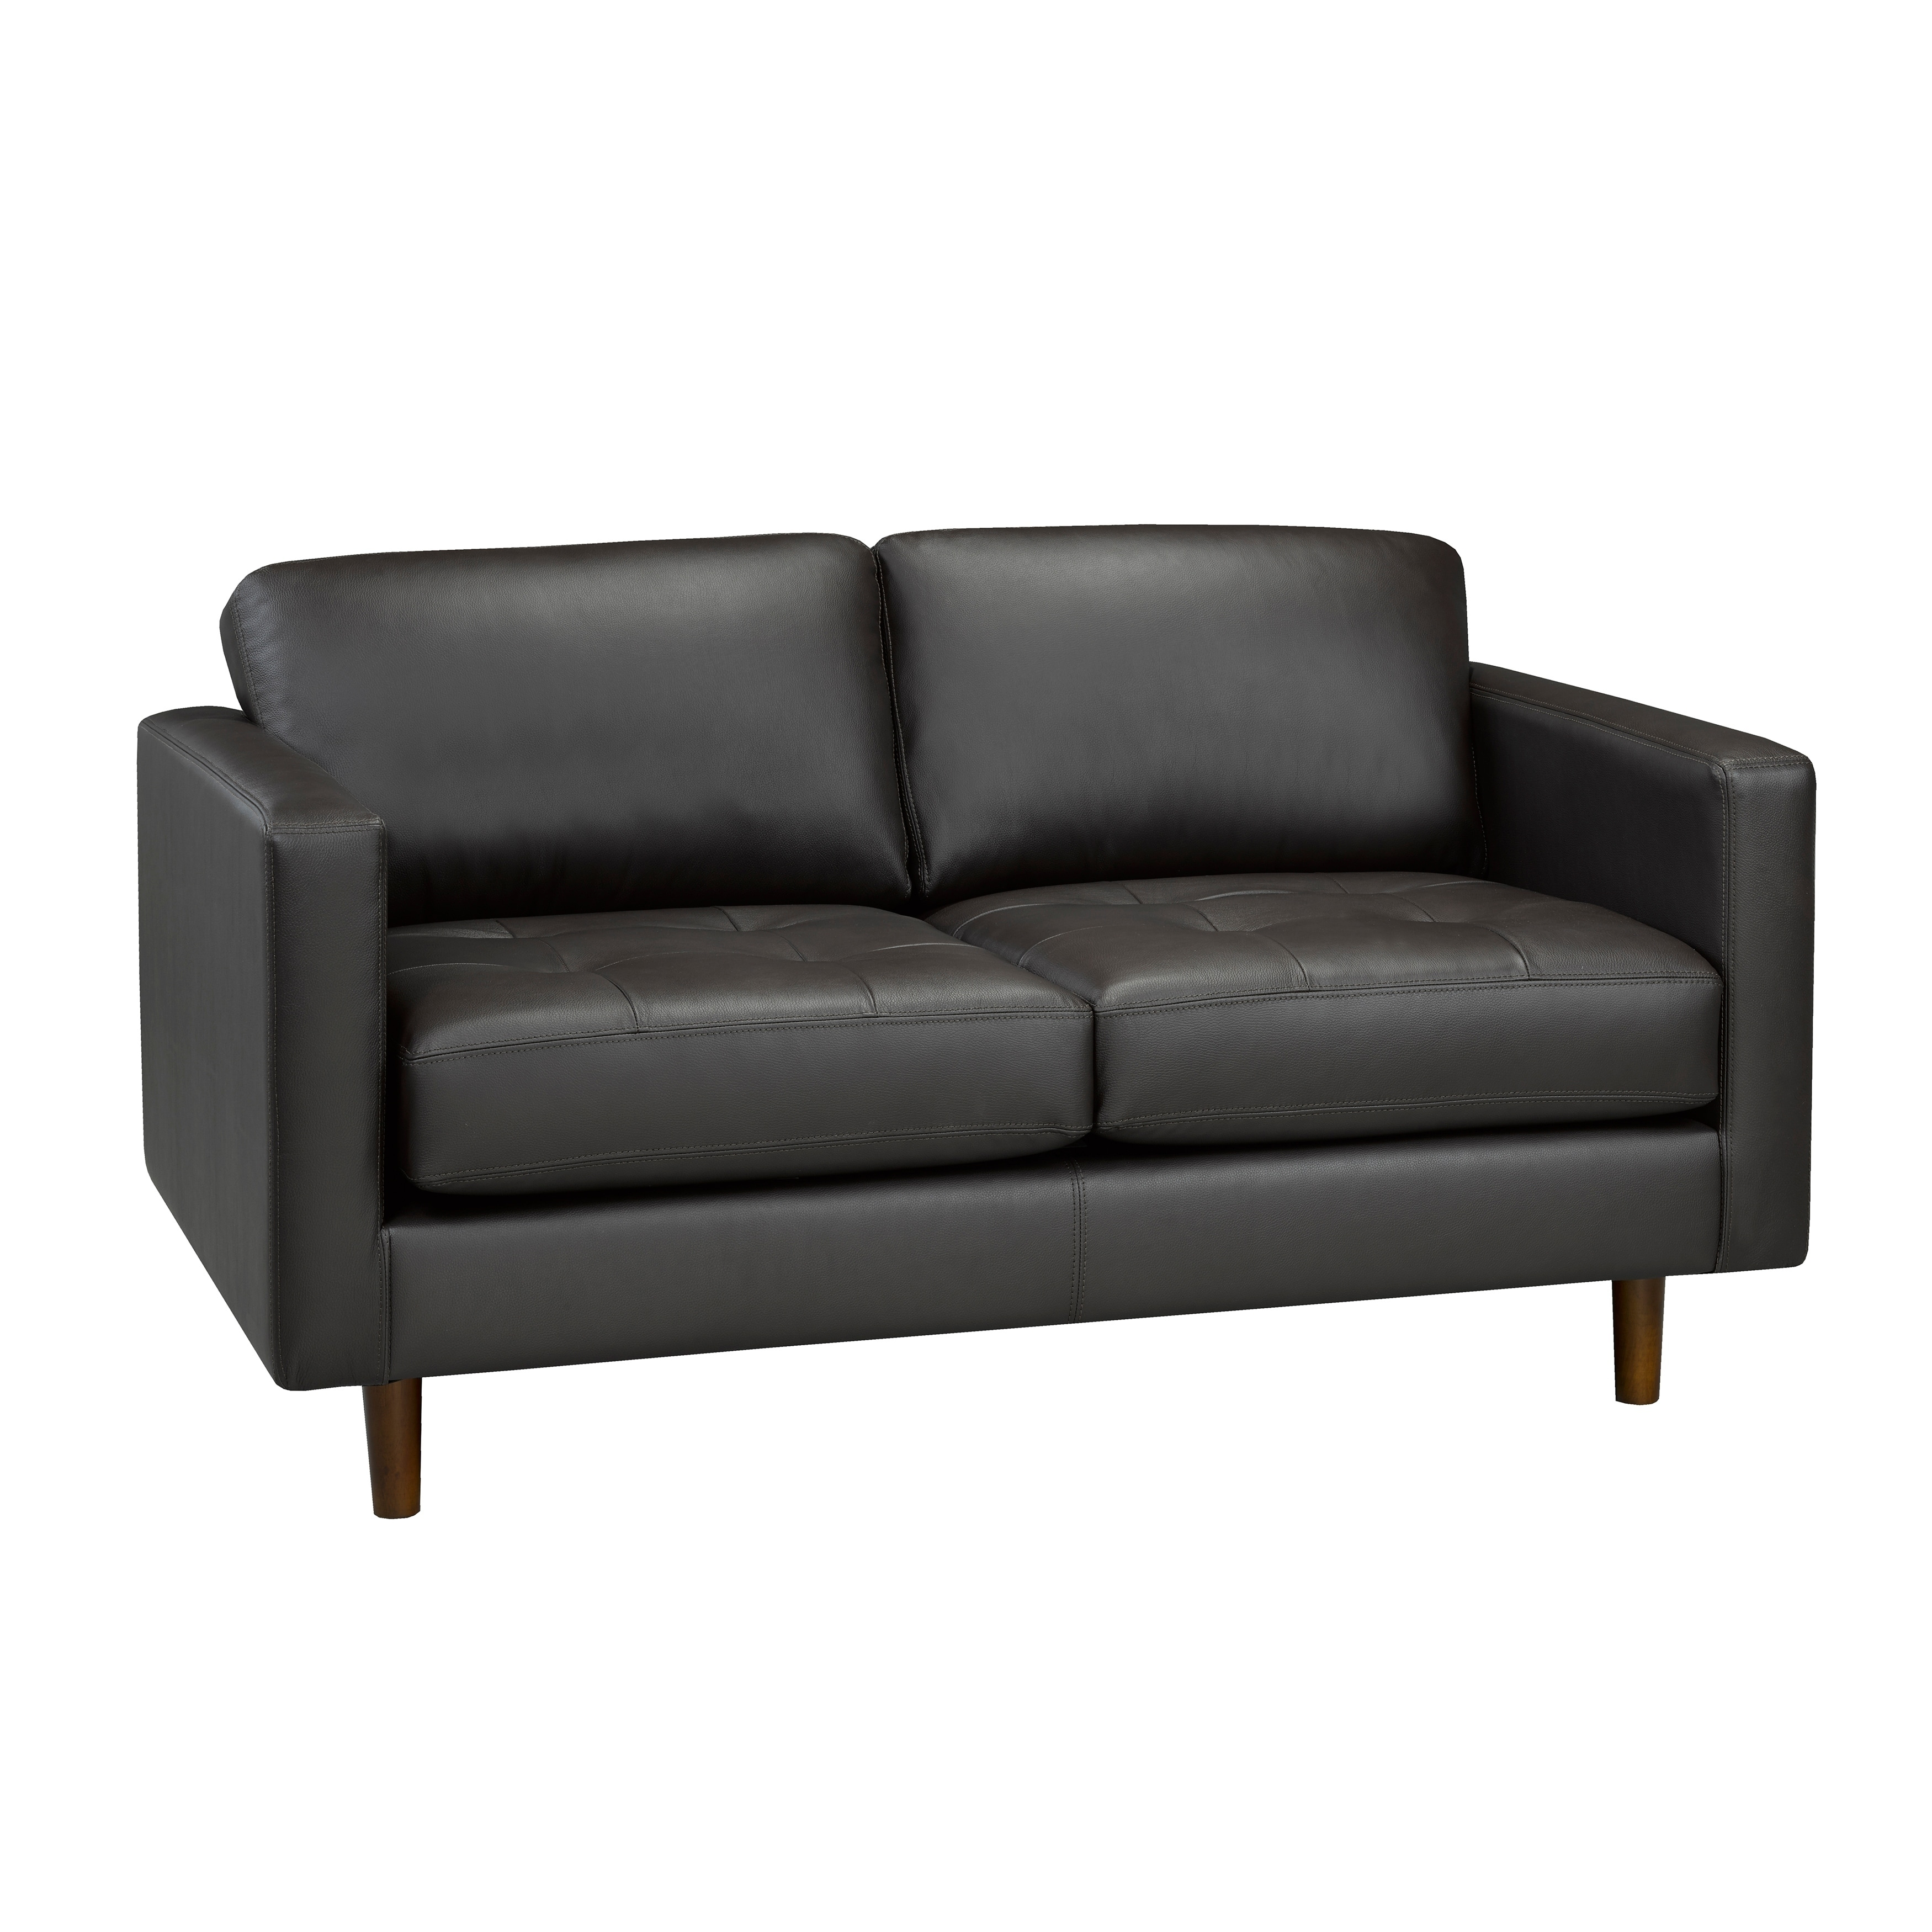 Lola Mid Century Modern Chocolate Brown Top Grain Italian Leather Tufted Sofa Loveseat And Chair On Free Shipping Today